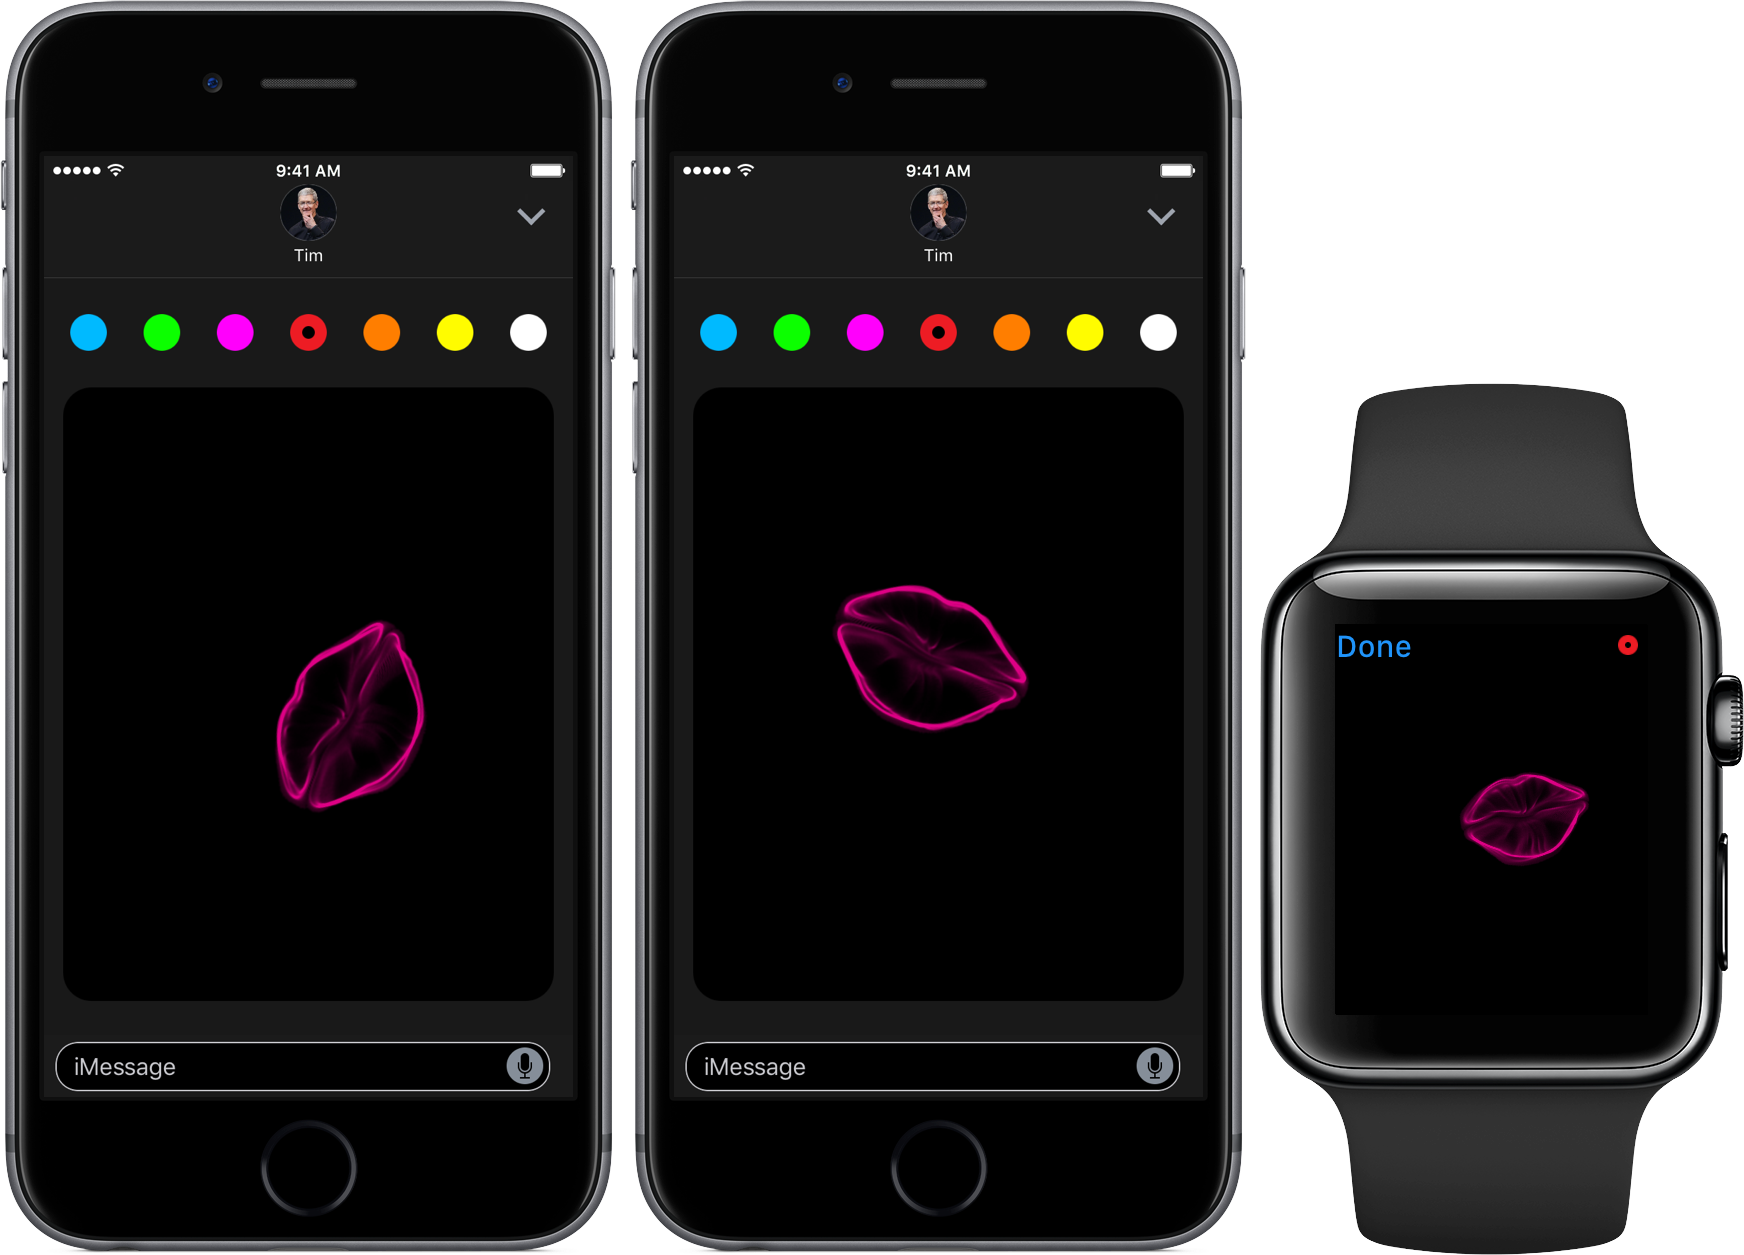 iOS 10 Messages Digital Touch kisses space gray iPhone Apple Watch screnshot 001